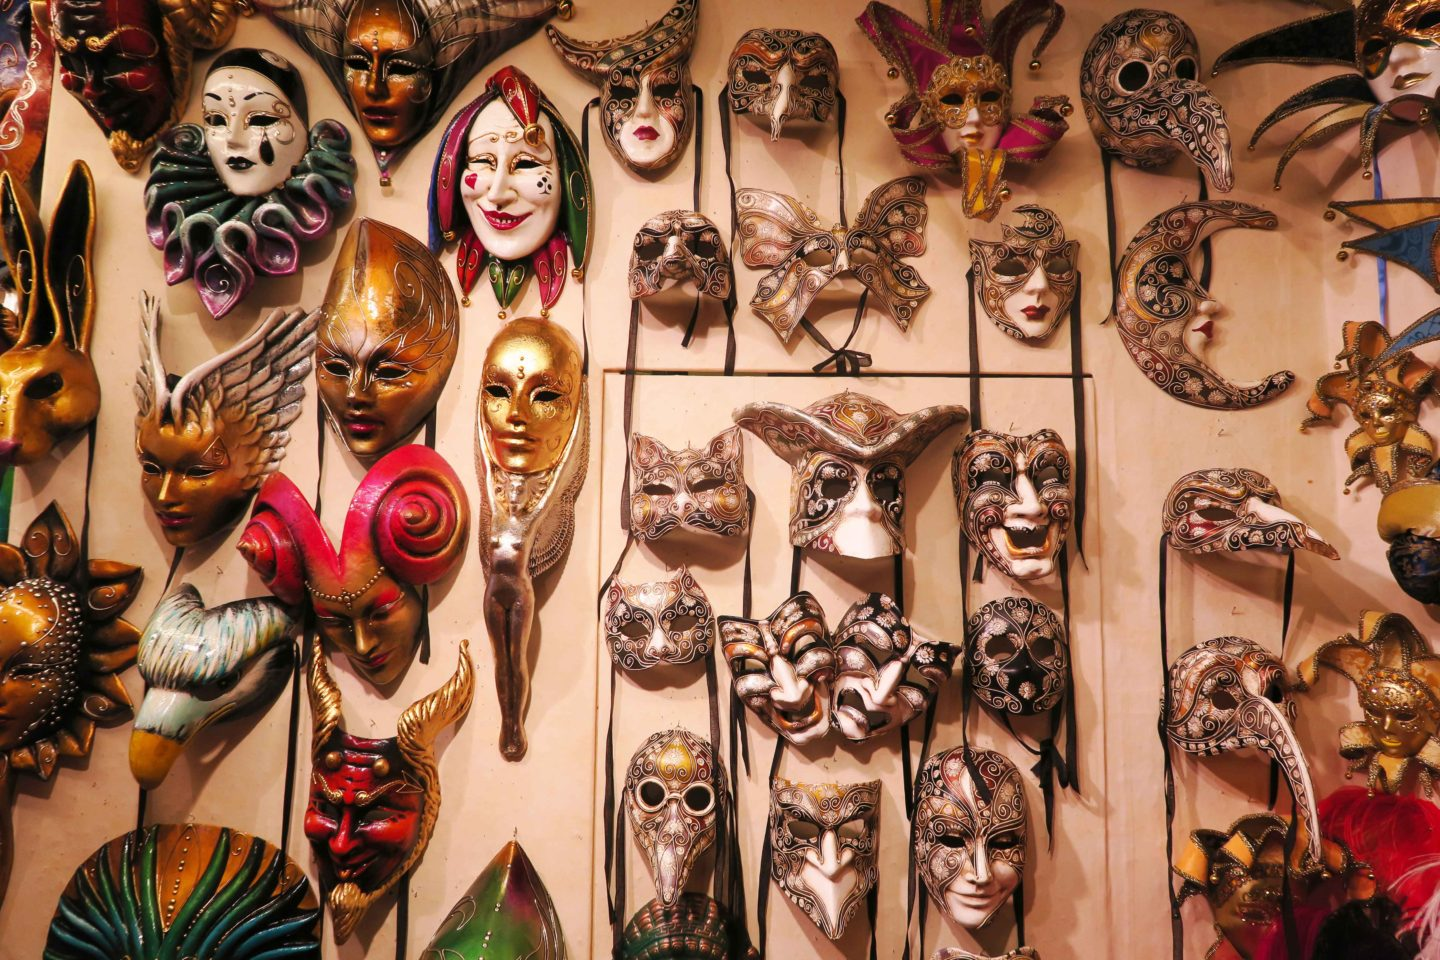 venitian masks on wall in gift shop in venice in italy